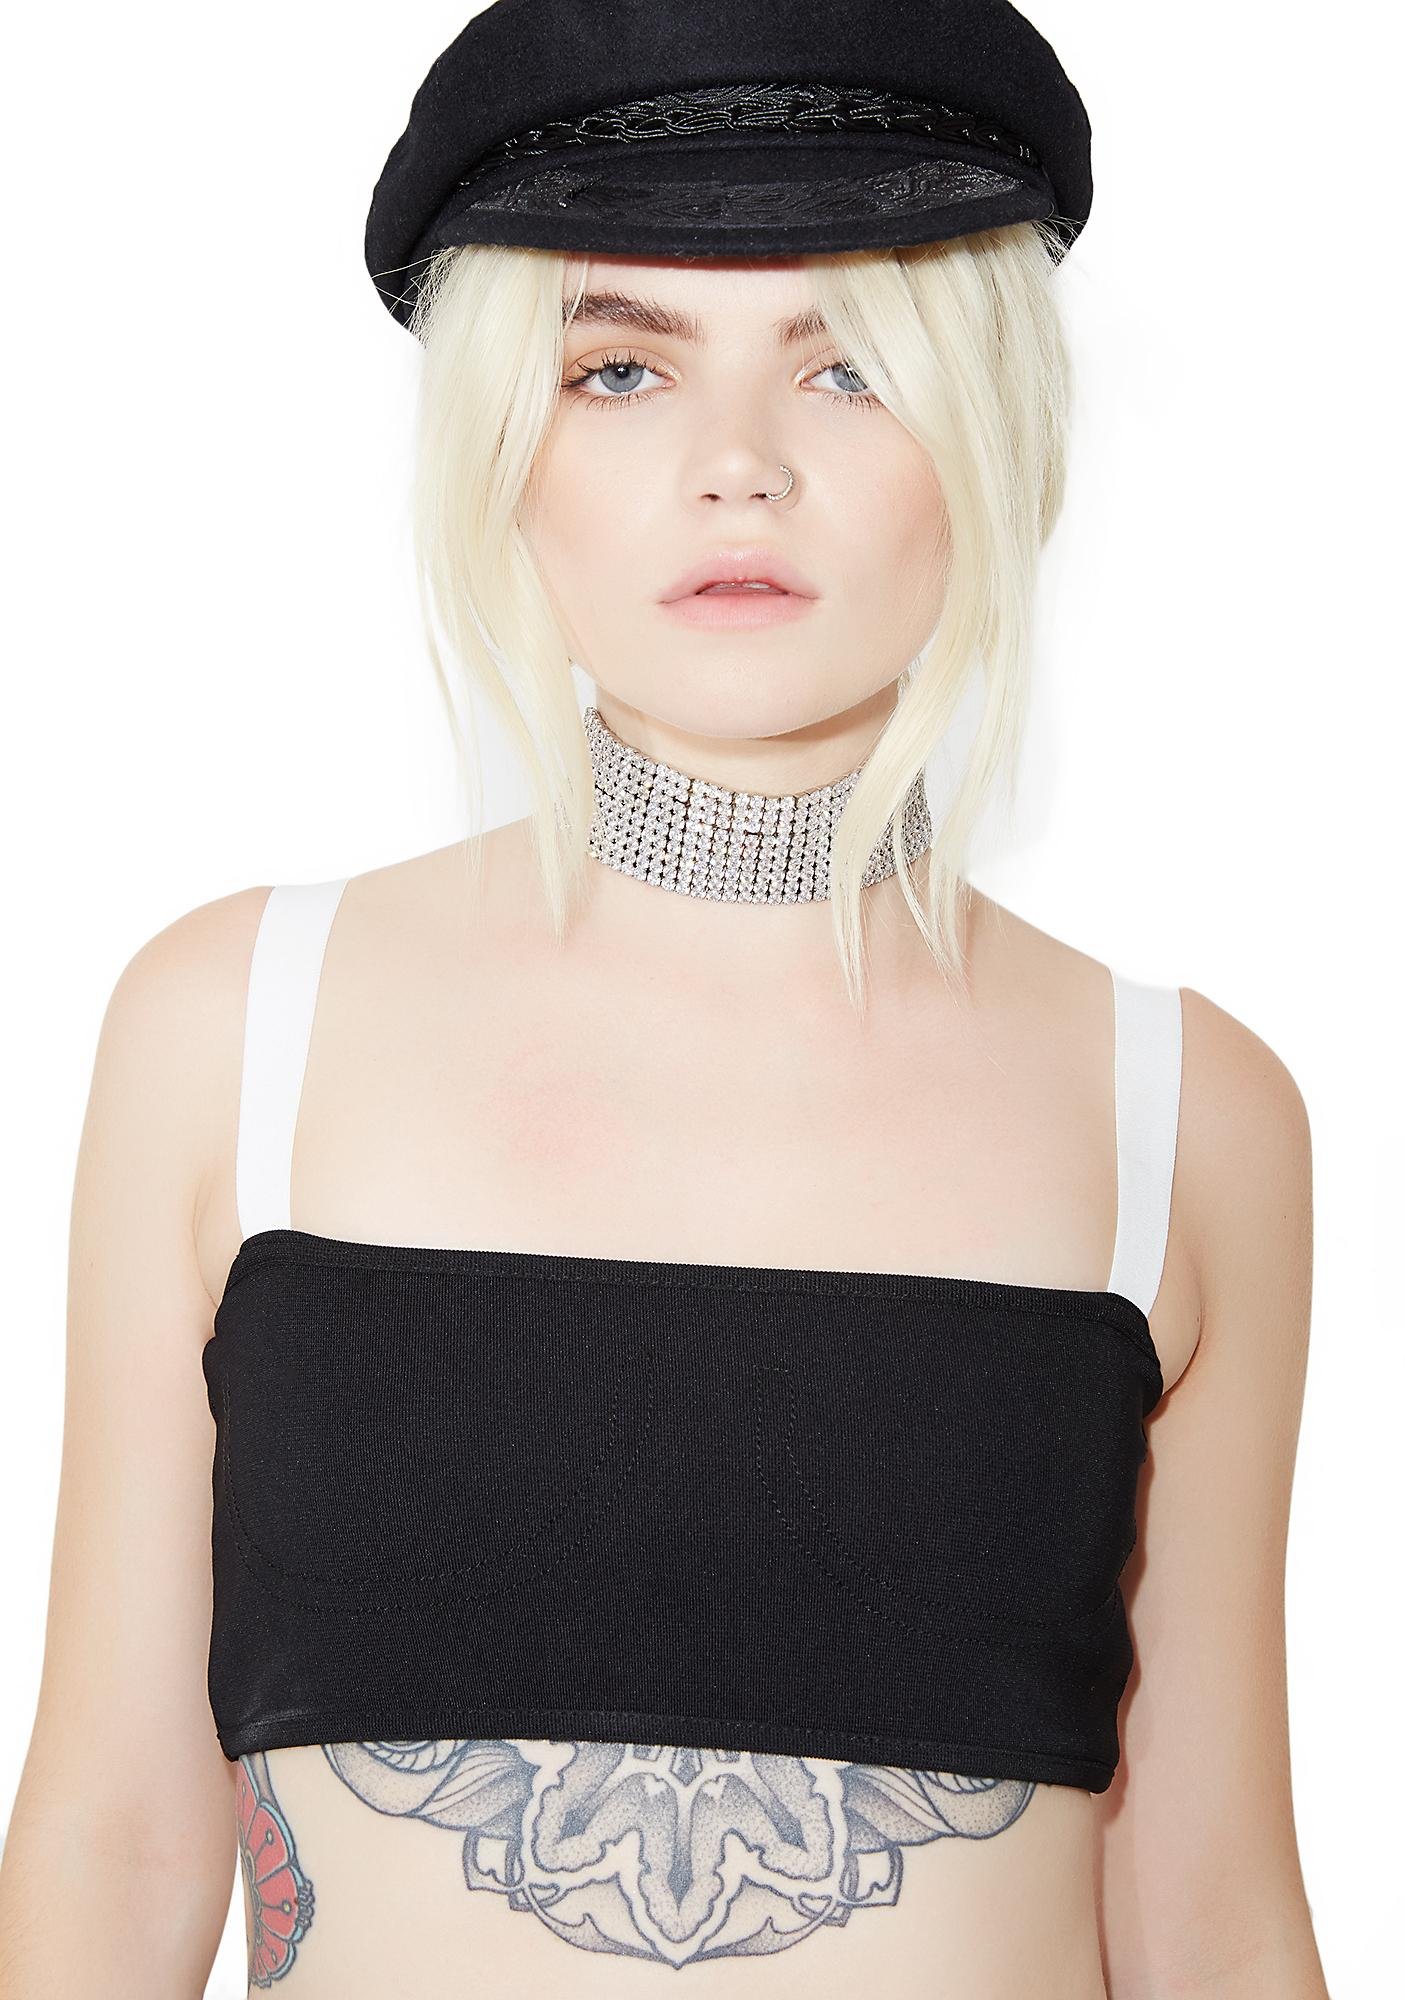 Kiki Riki Minimal Effort Bra Top